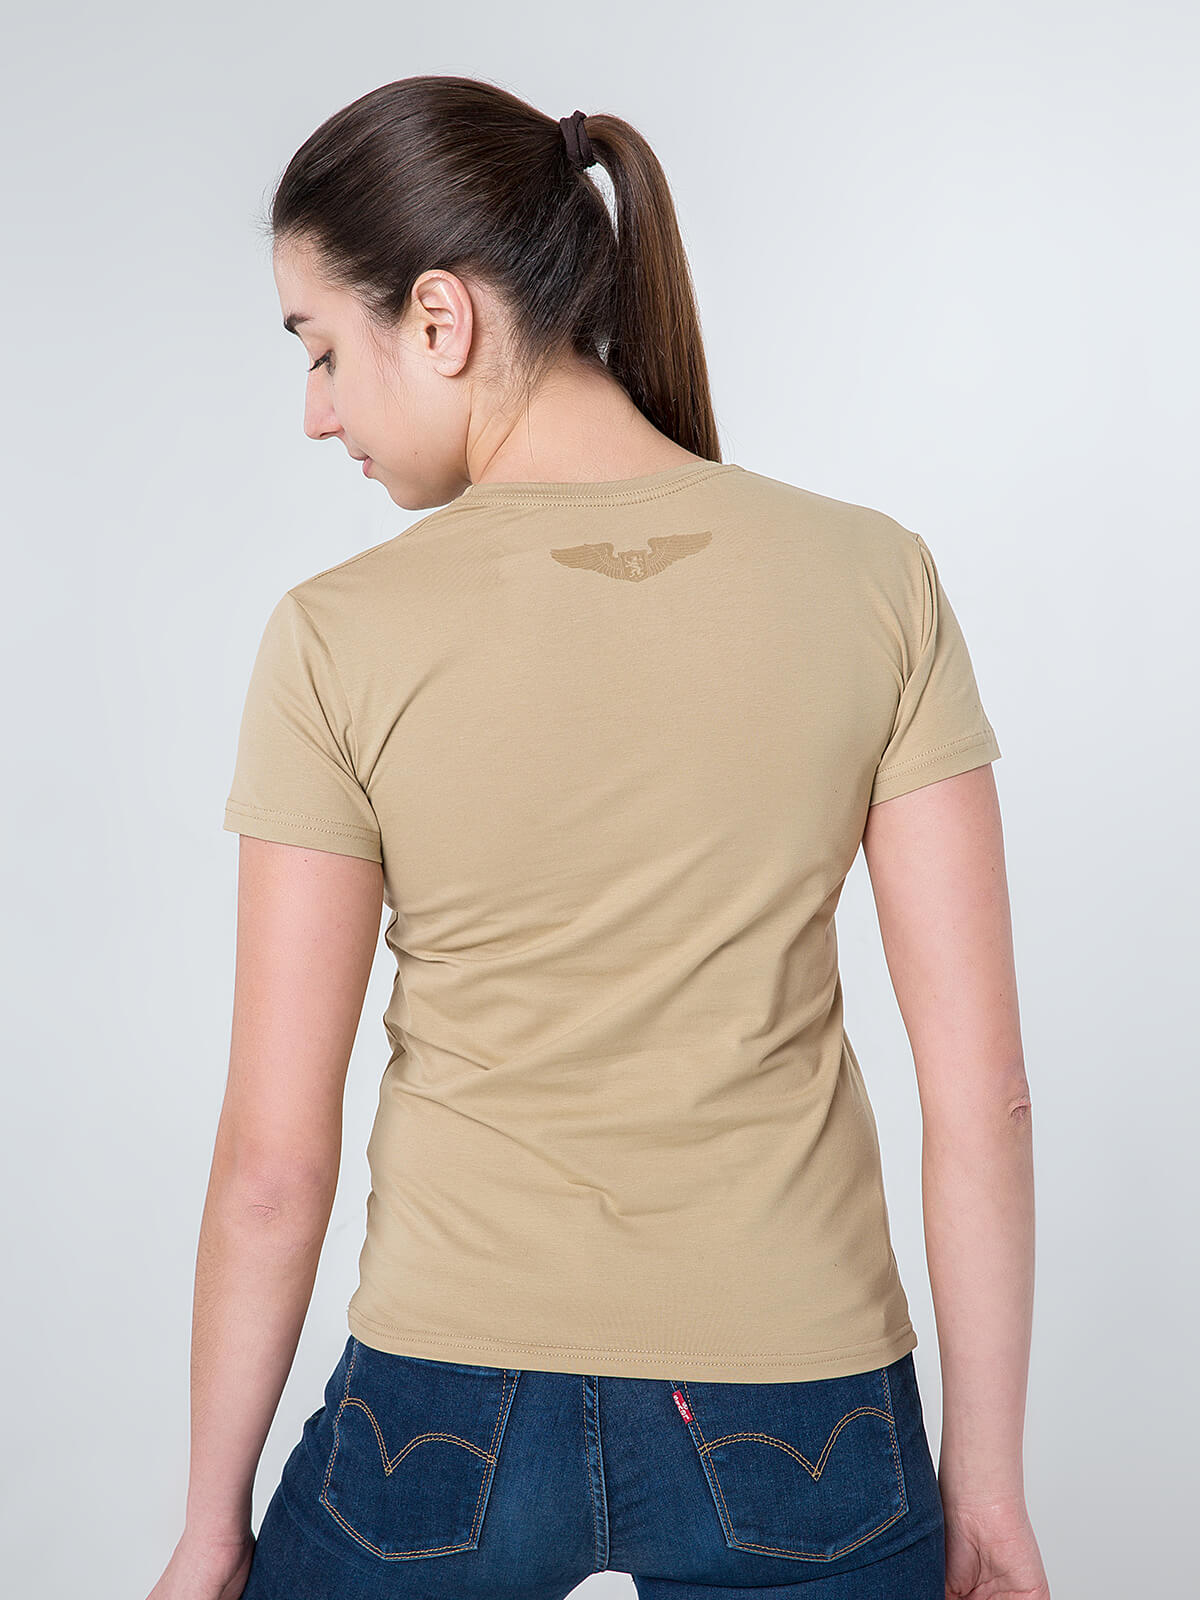 Women's T-Shirt Born In Ukraine. Color sand.  Don't worry about the universal size.